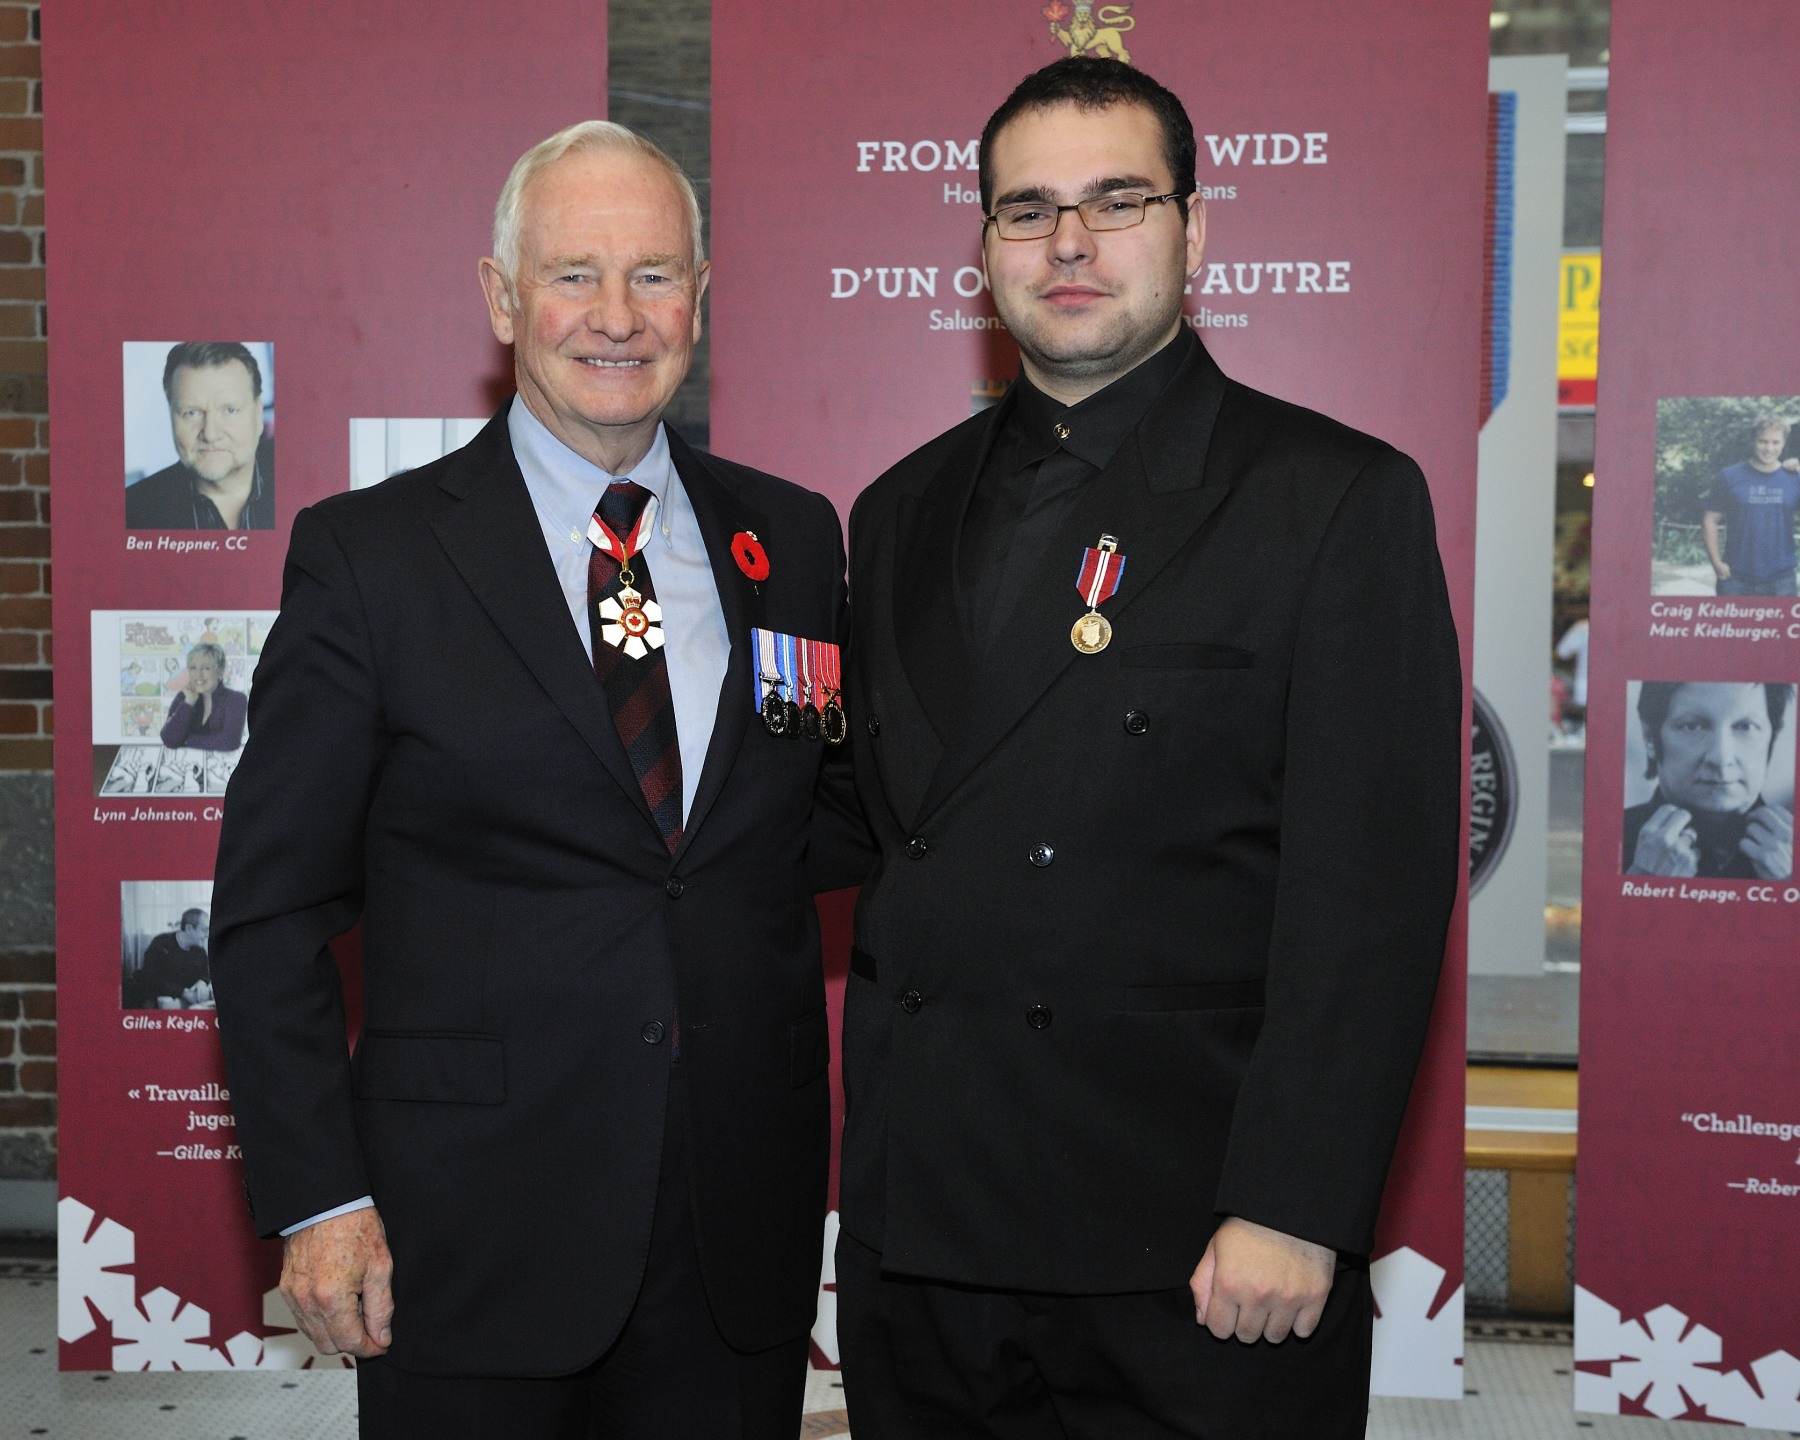 Pyer-Luc Parent (Saint-Georges de Beauce, Quebec) is recognized for his 5 000 volunteer hours of community work with St. John Ambulance, which he joined when he was just 12 years old.